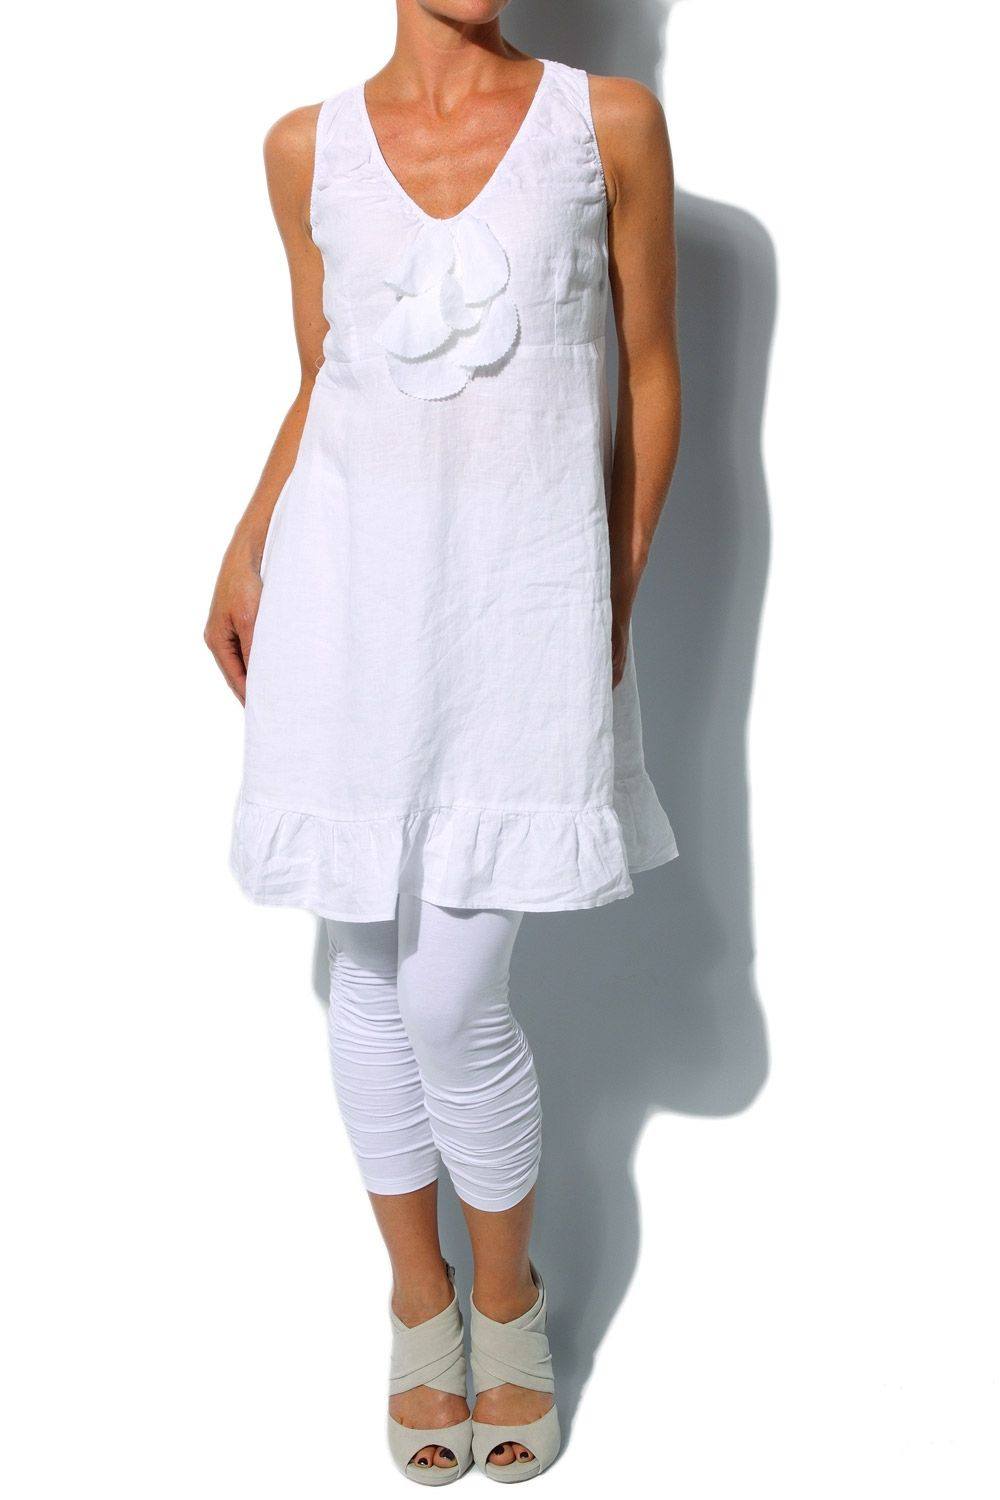 linen smock dresses w/leggings | Avoca Anthology White Linen Smock Sun Dress from Getmyfashion.com. volume starts below bust